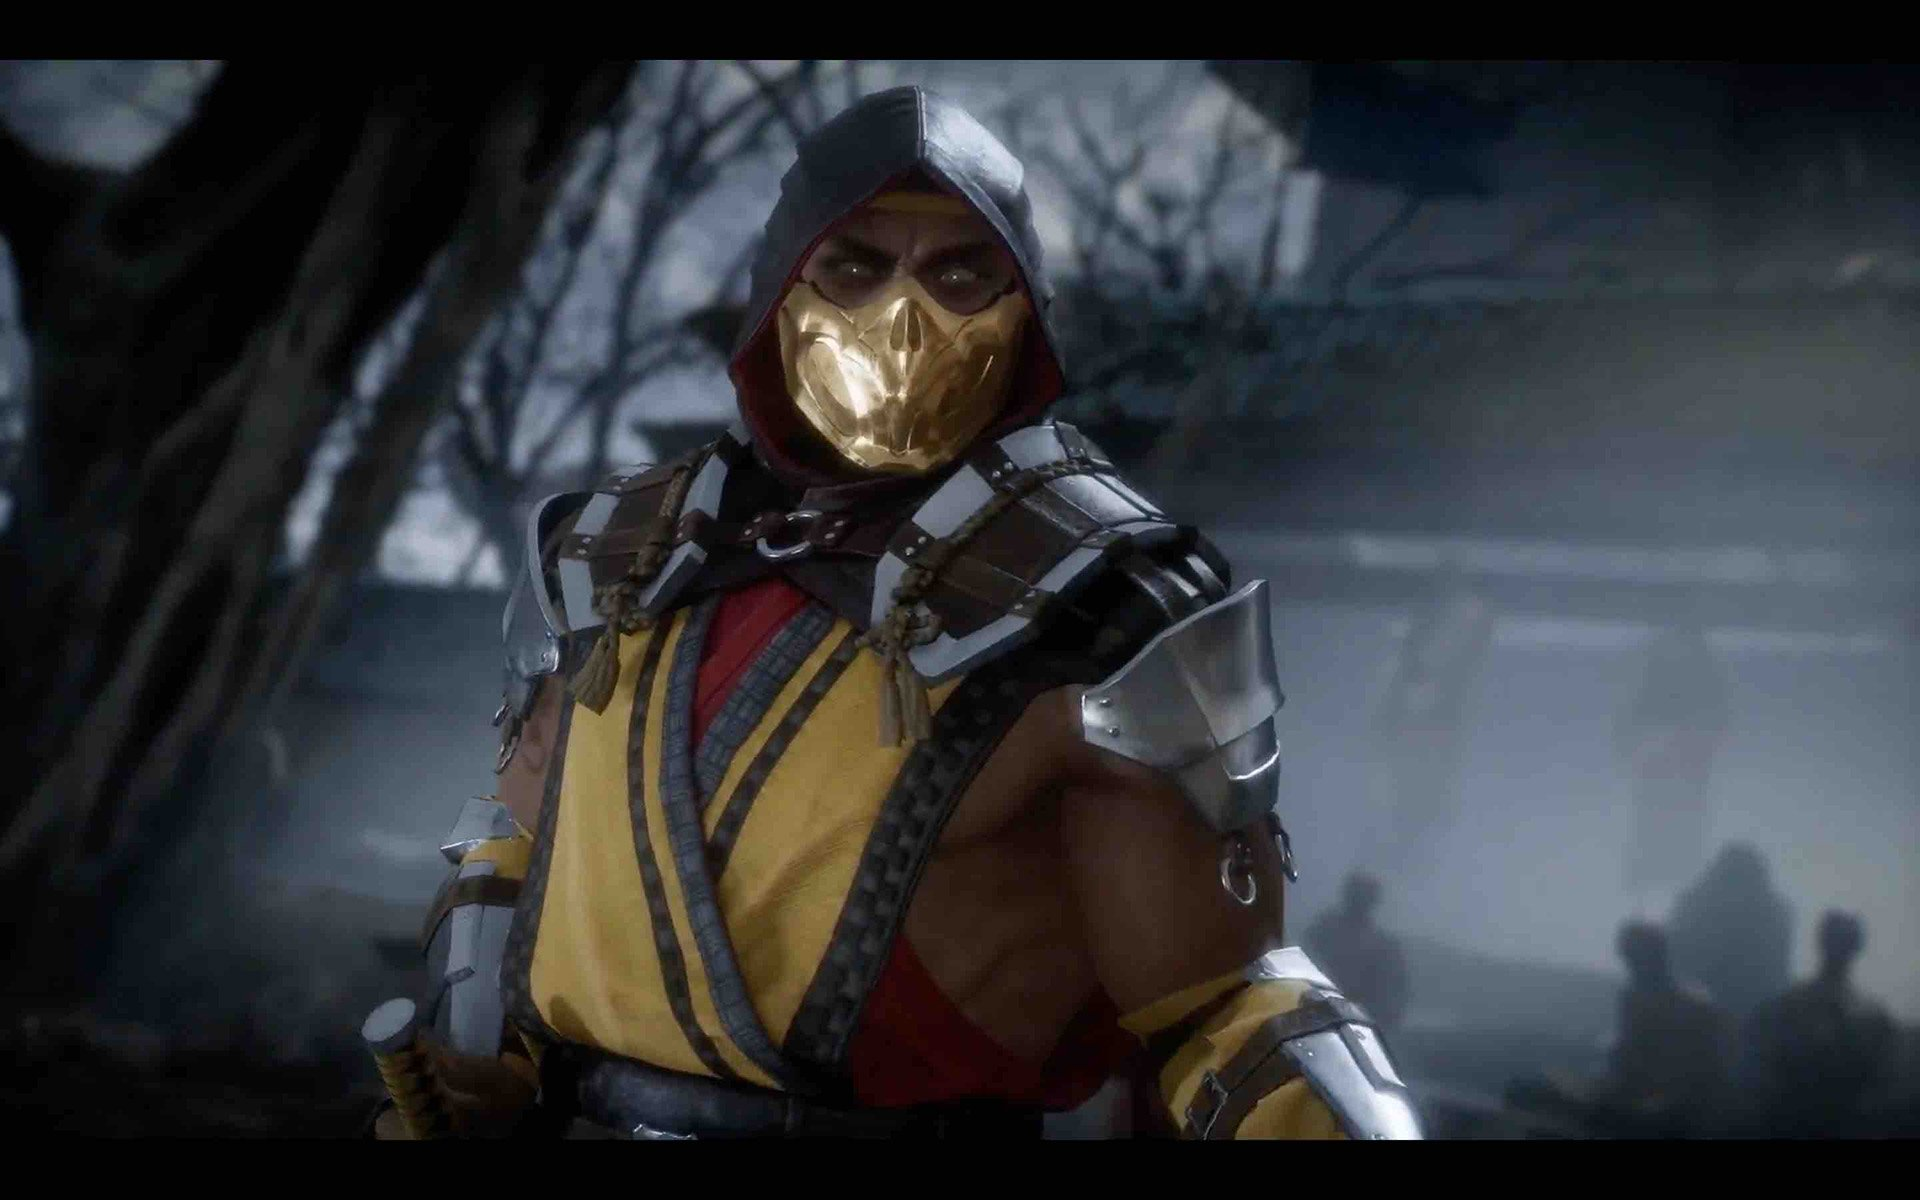 Mortal Kombat 11 PlayStation 4 controls and button mapping